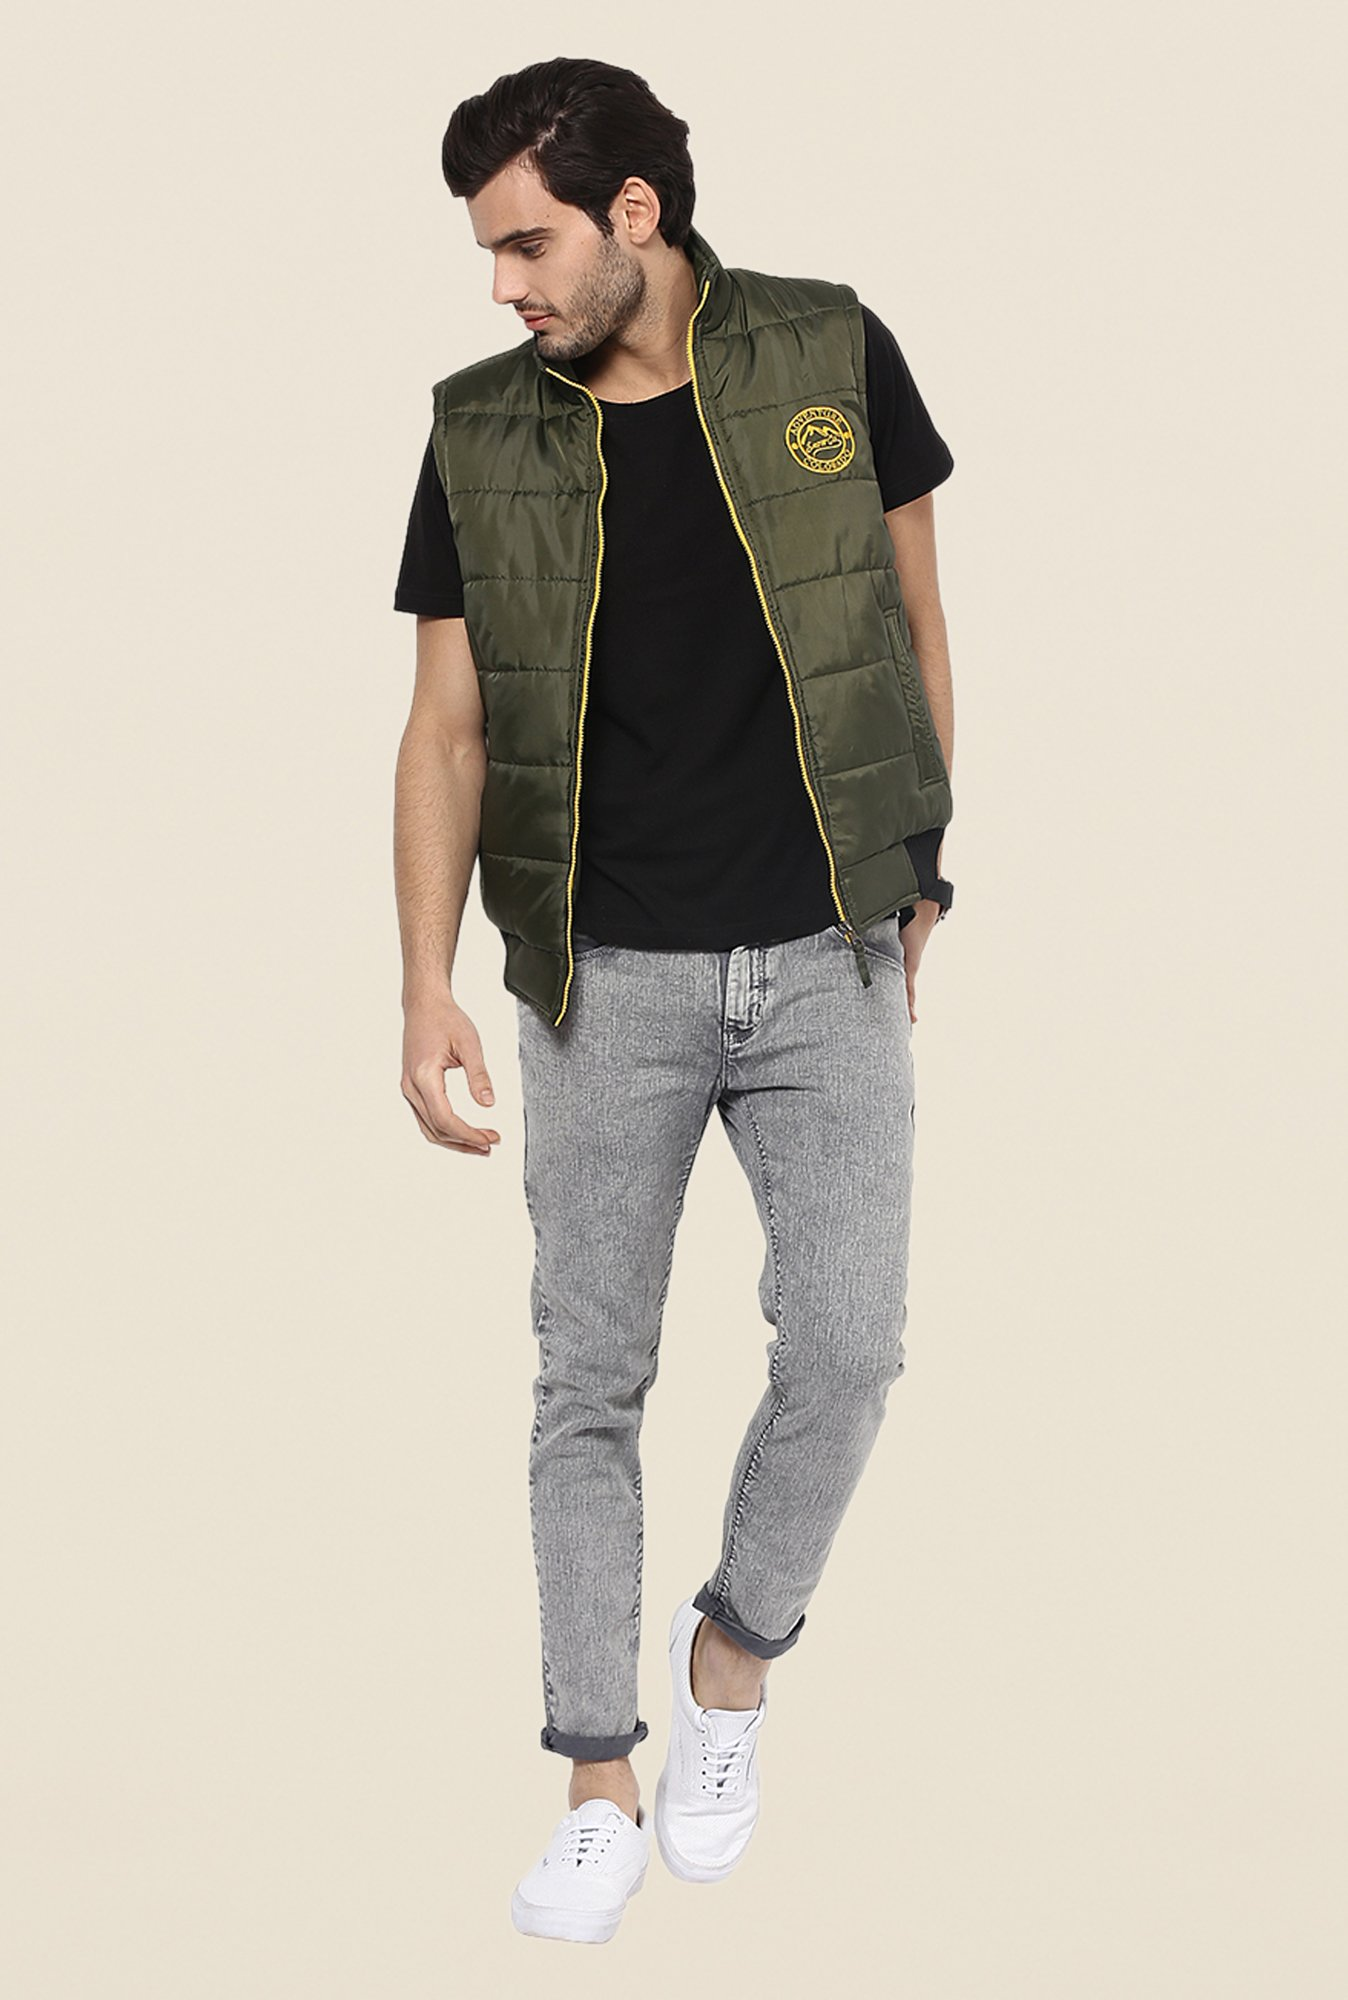 Yepme Edgar Olive Green Sleeveless Jacket